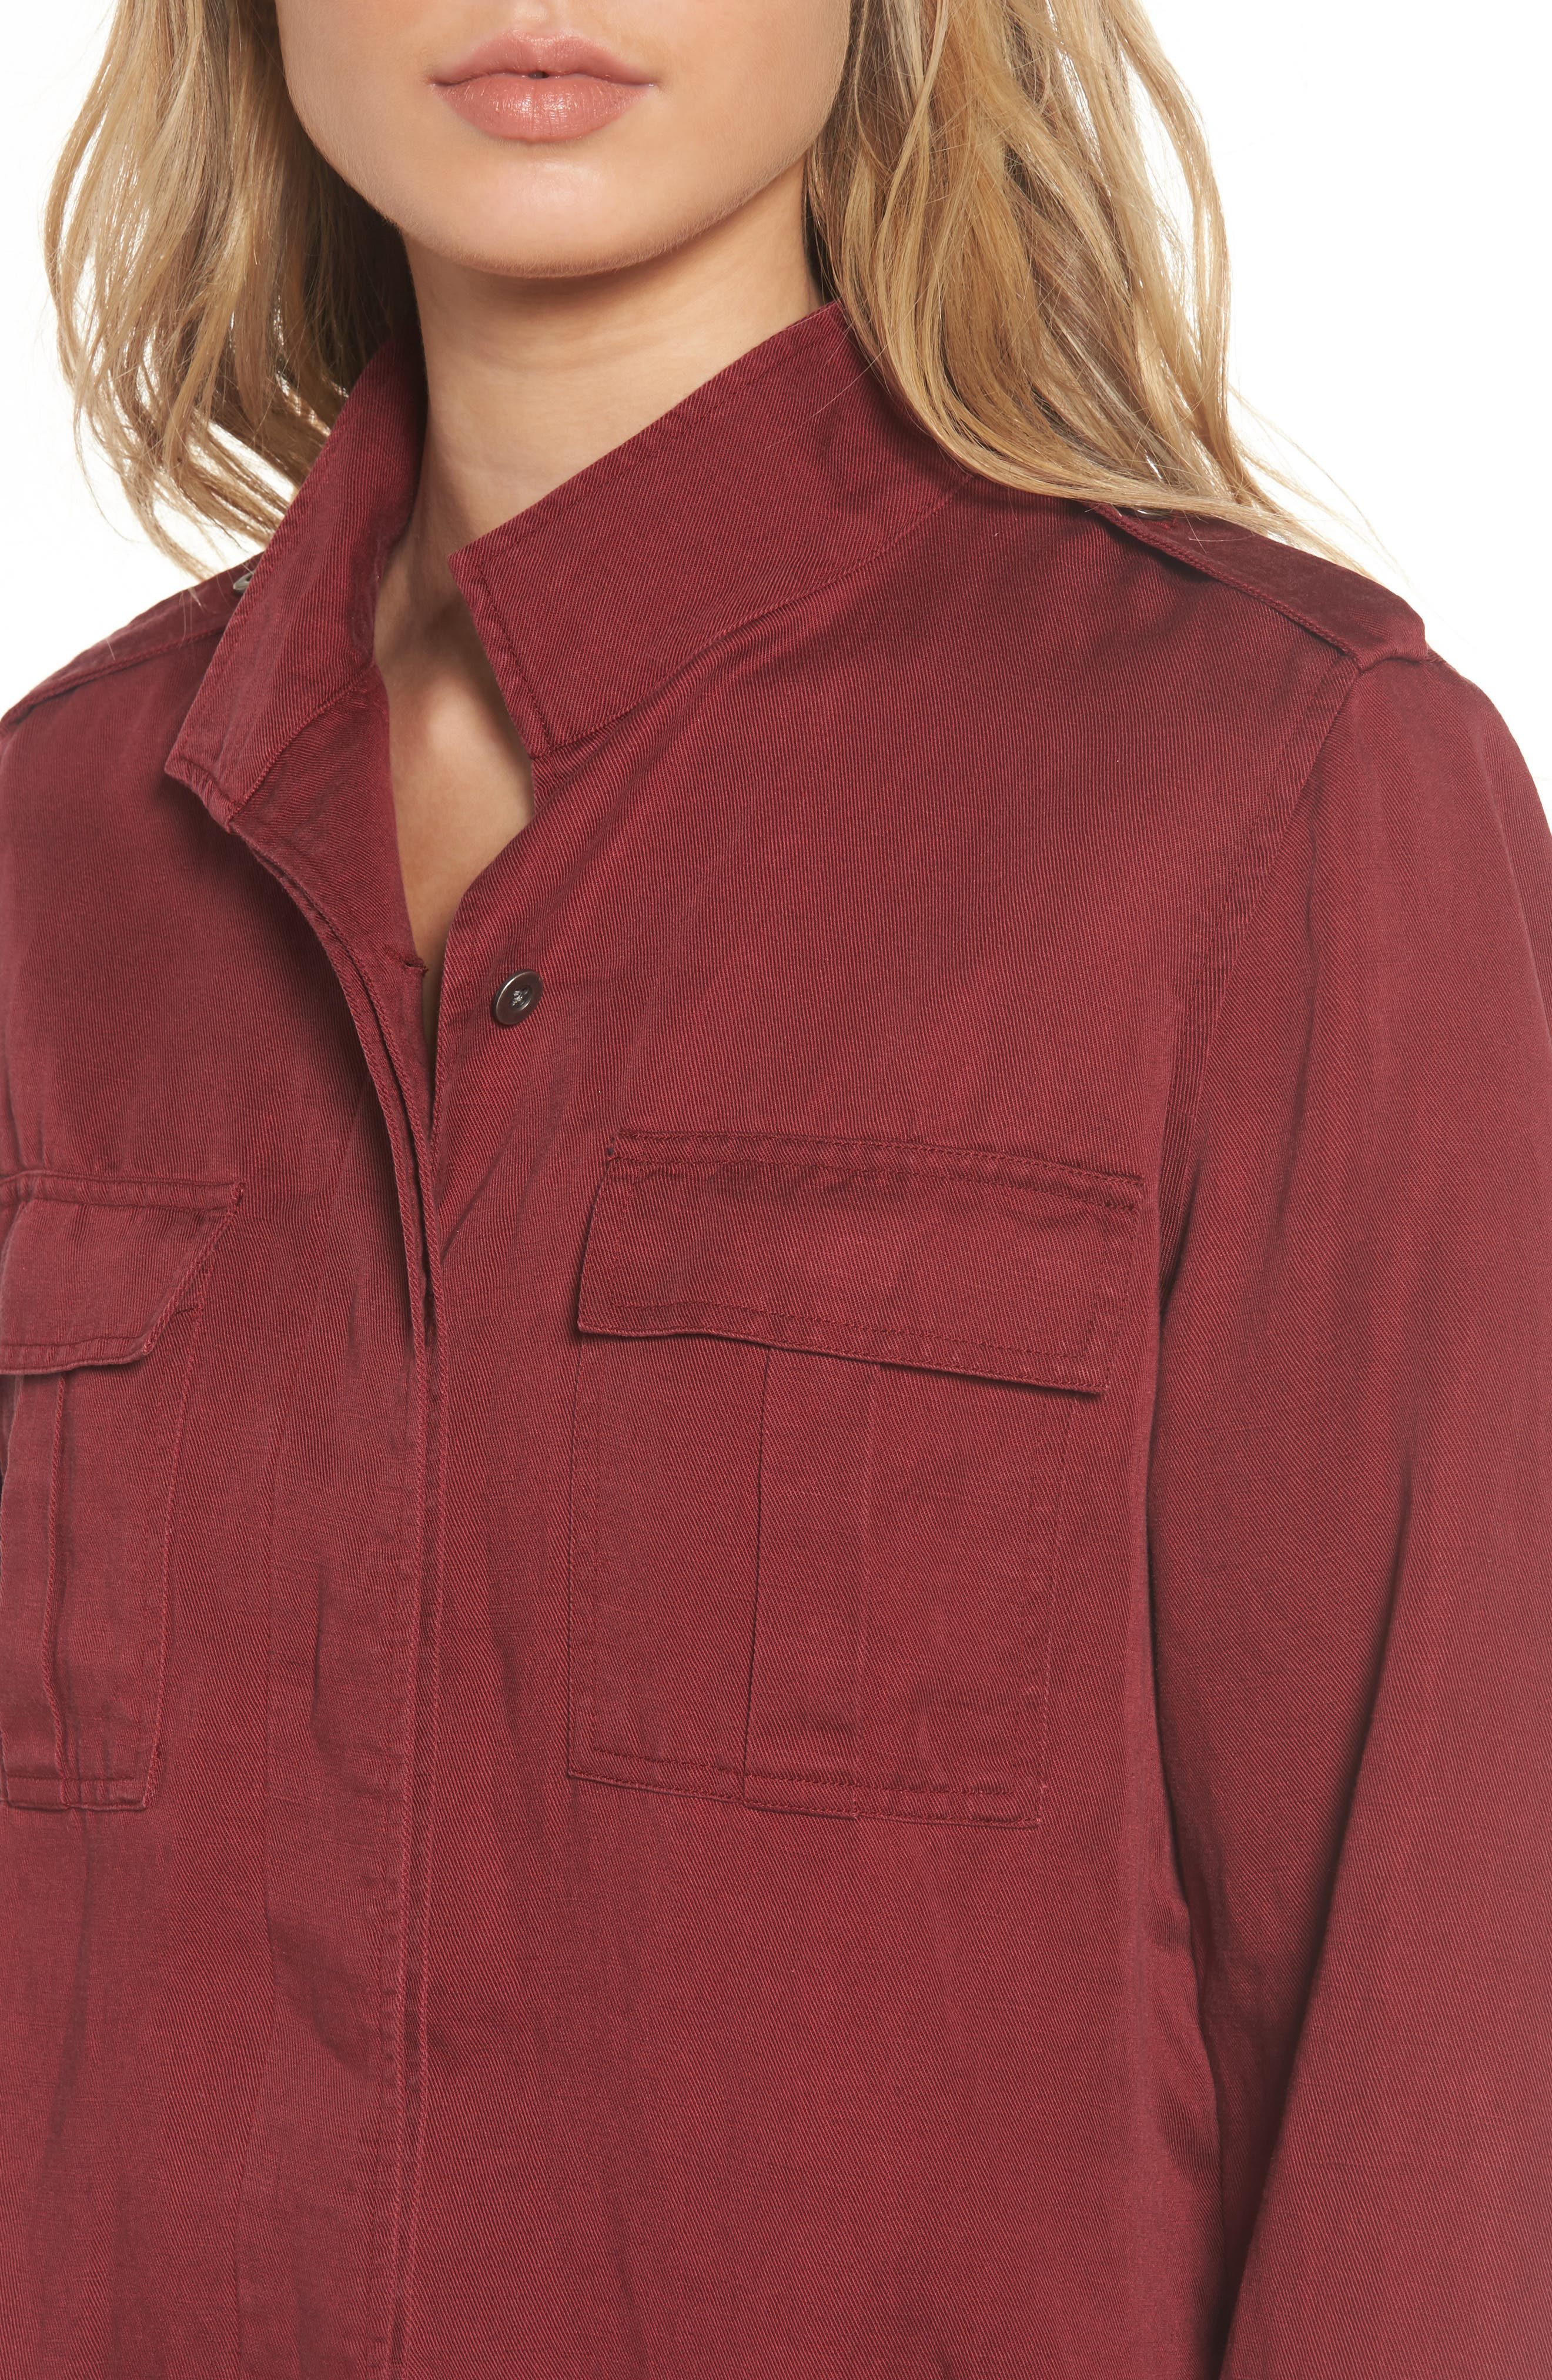 Maverick Military Jacket,                             Alternate thumbnail 4, color,                             Oxblood